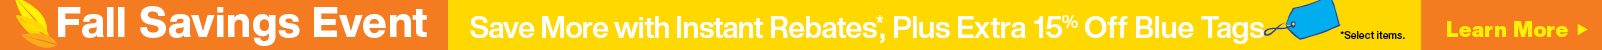 Fall Savings Event, Save more with instant rebates on select items.